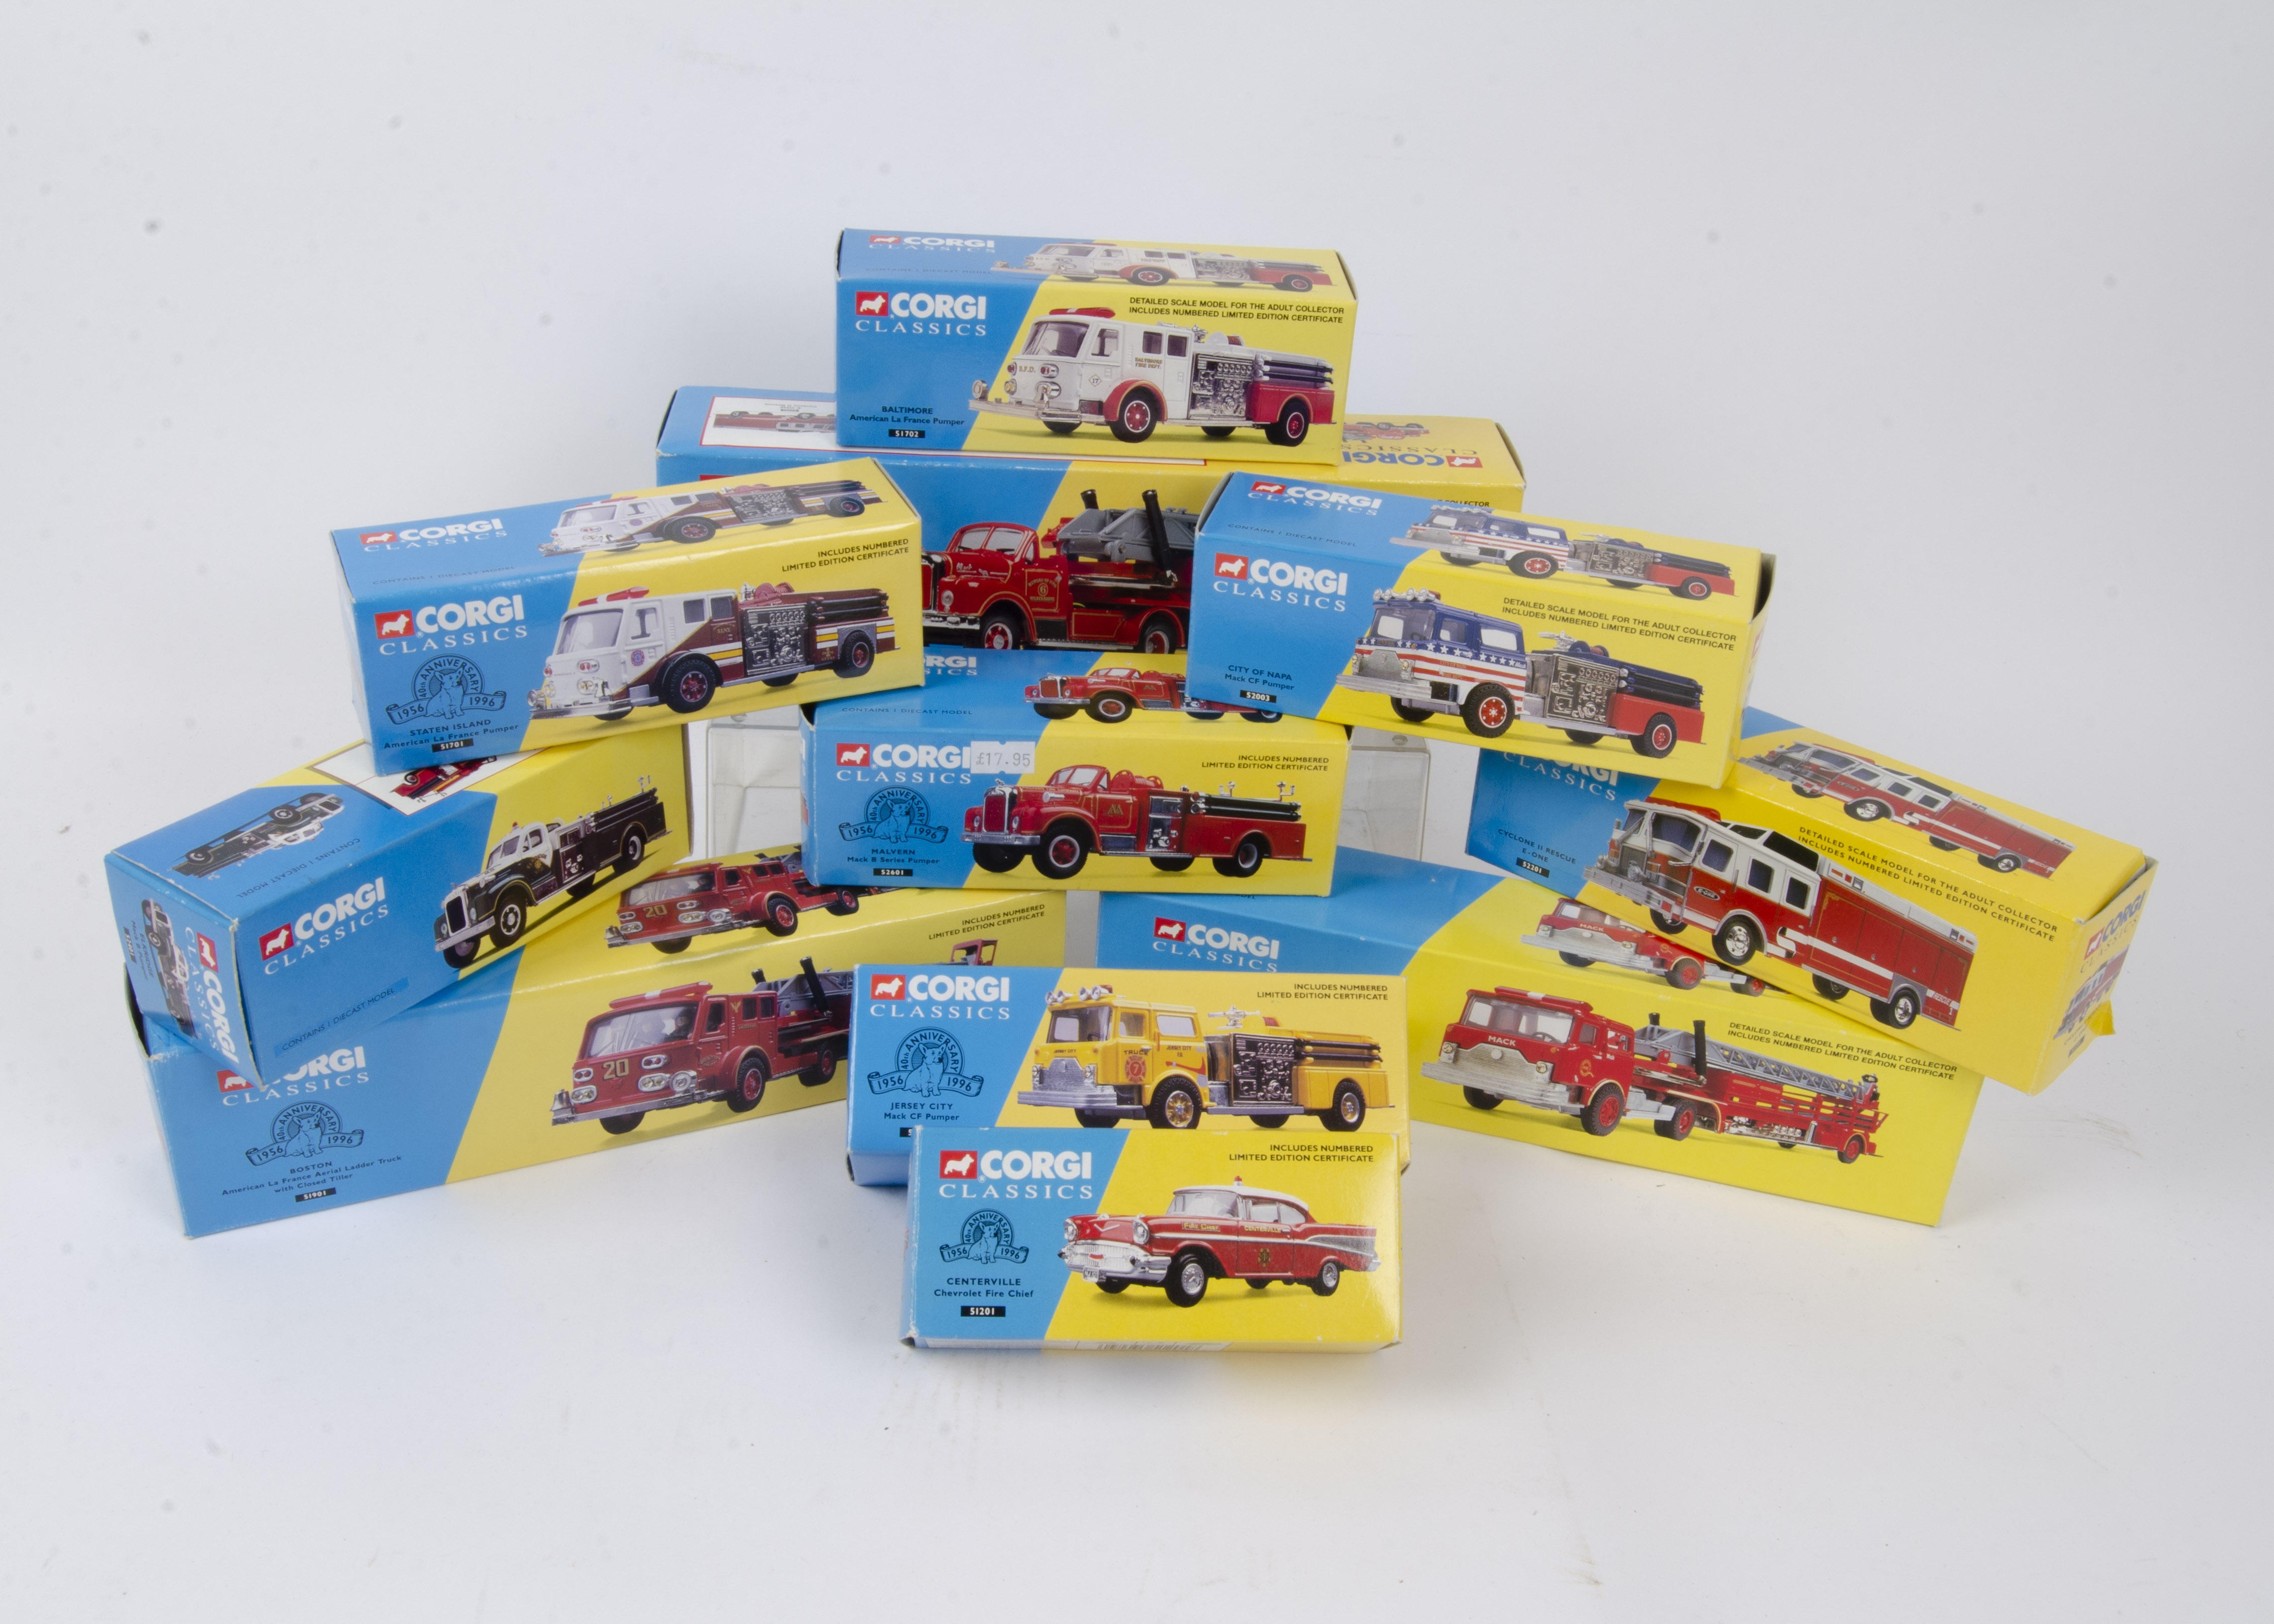 Corgi Classics American Fire Engines and Related Vehicles, a boxed collection some limited edition